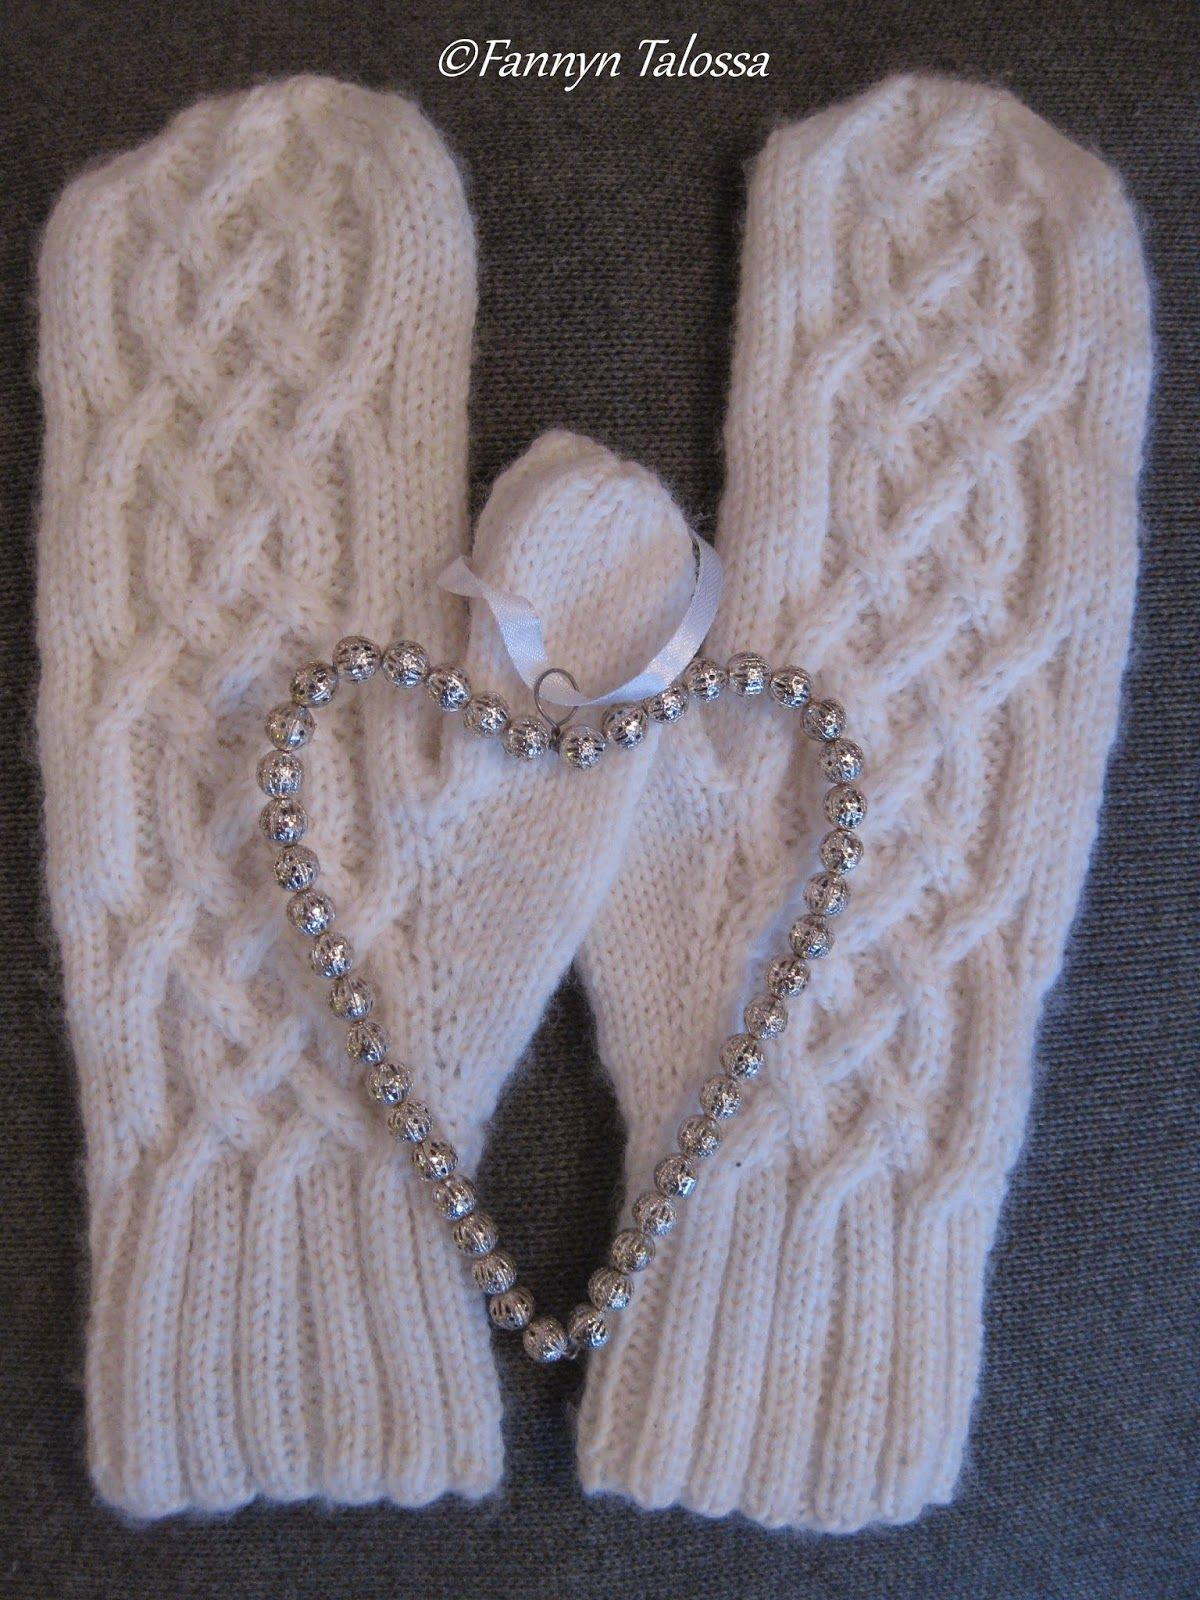 Karisma-mittens made for my mother-in-law as a christmas present